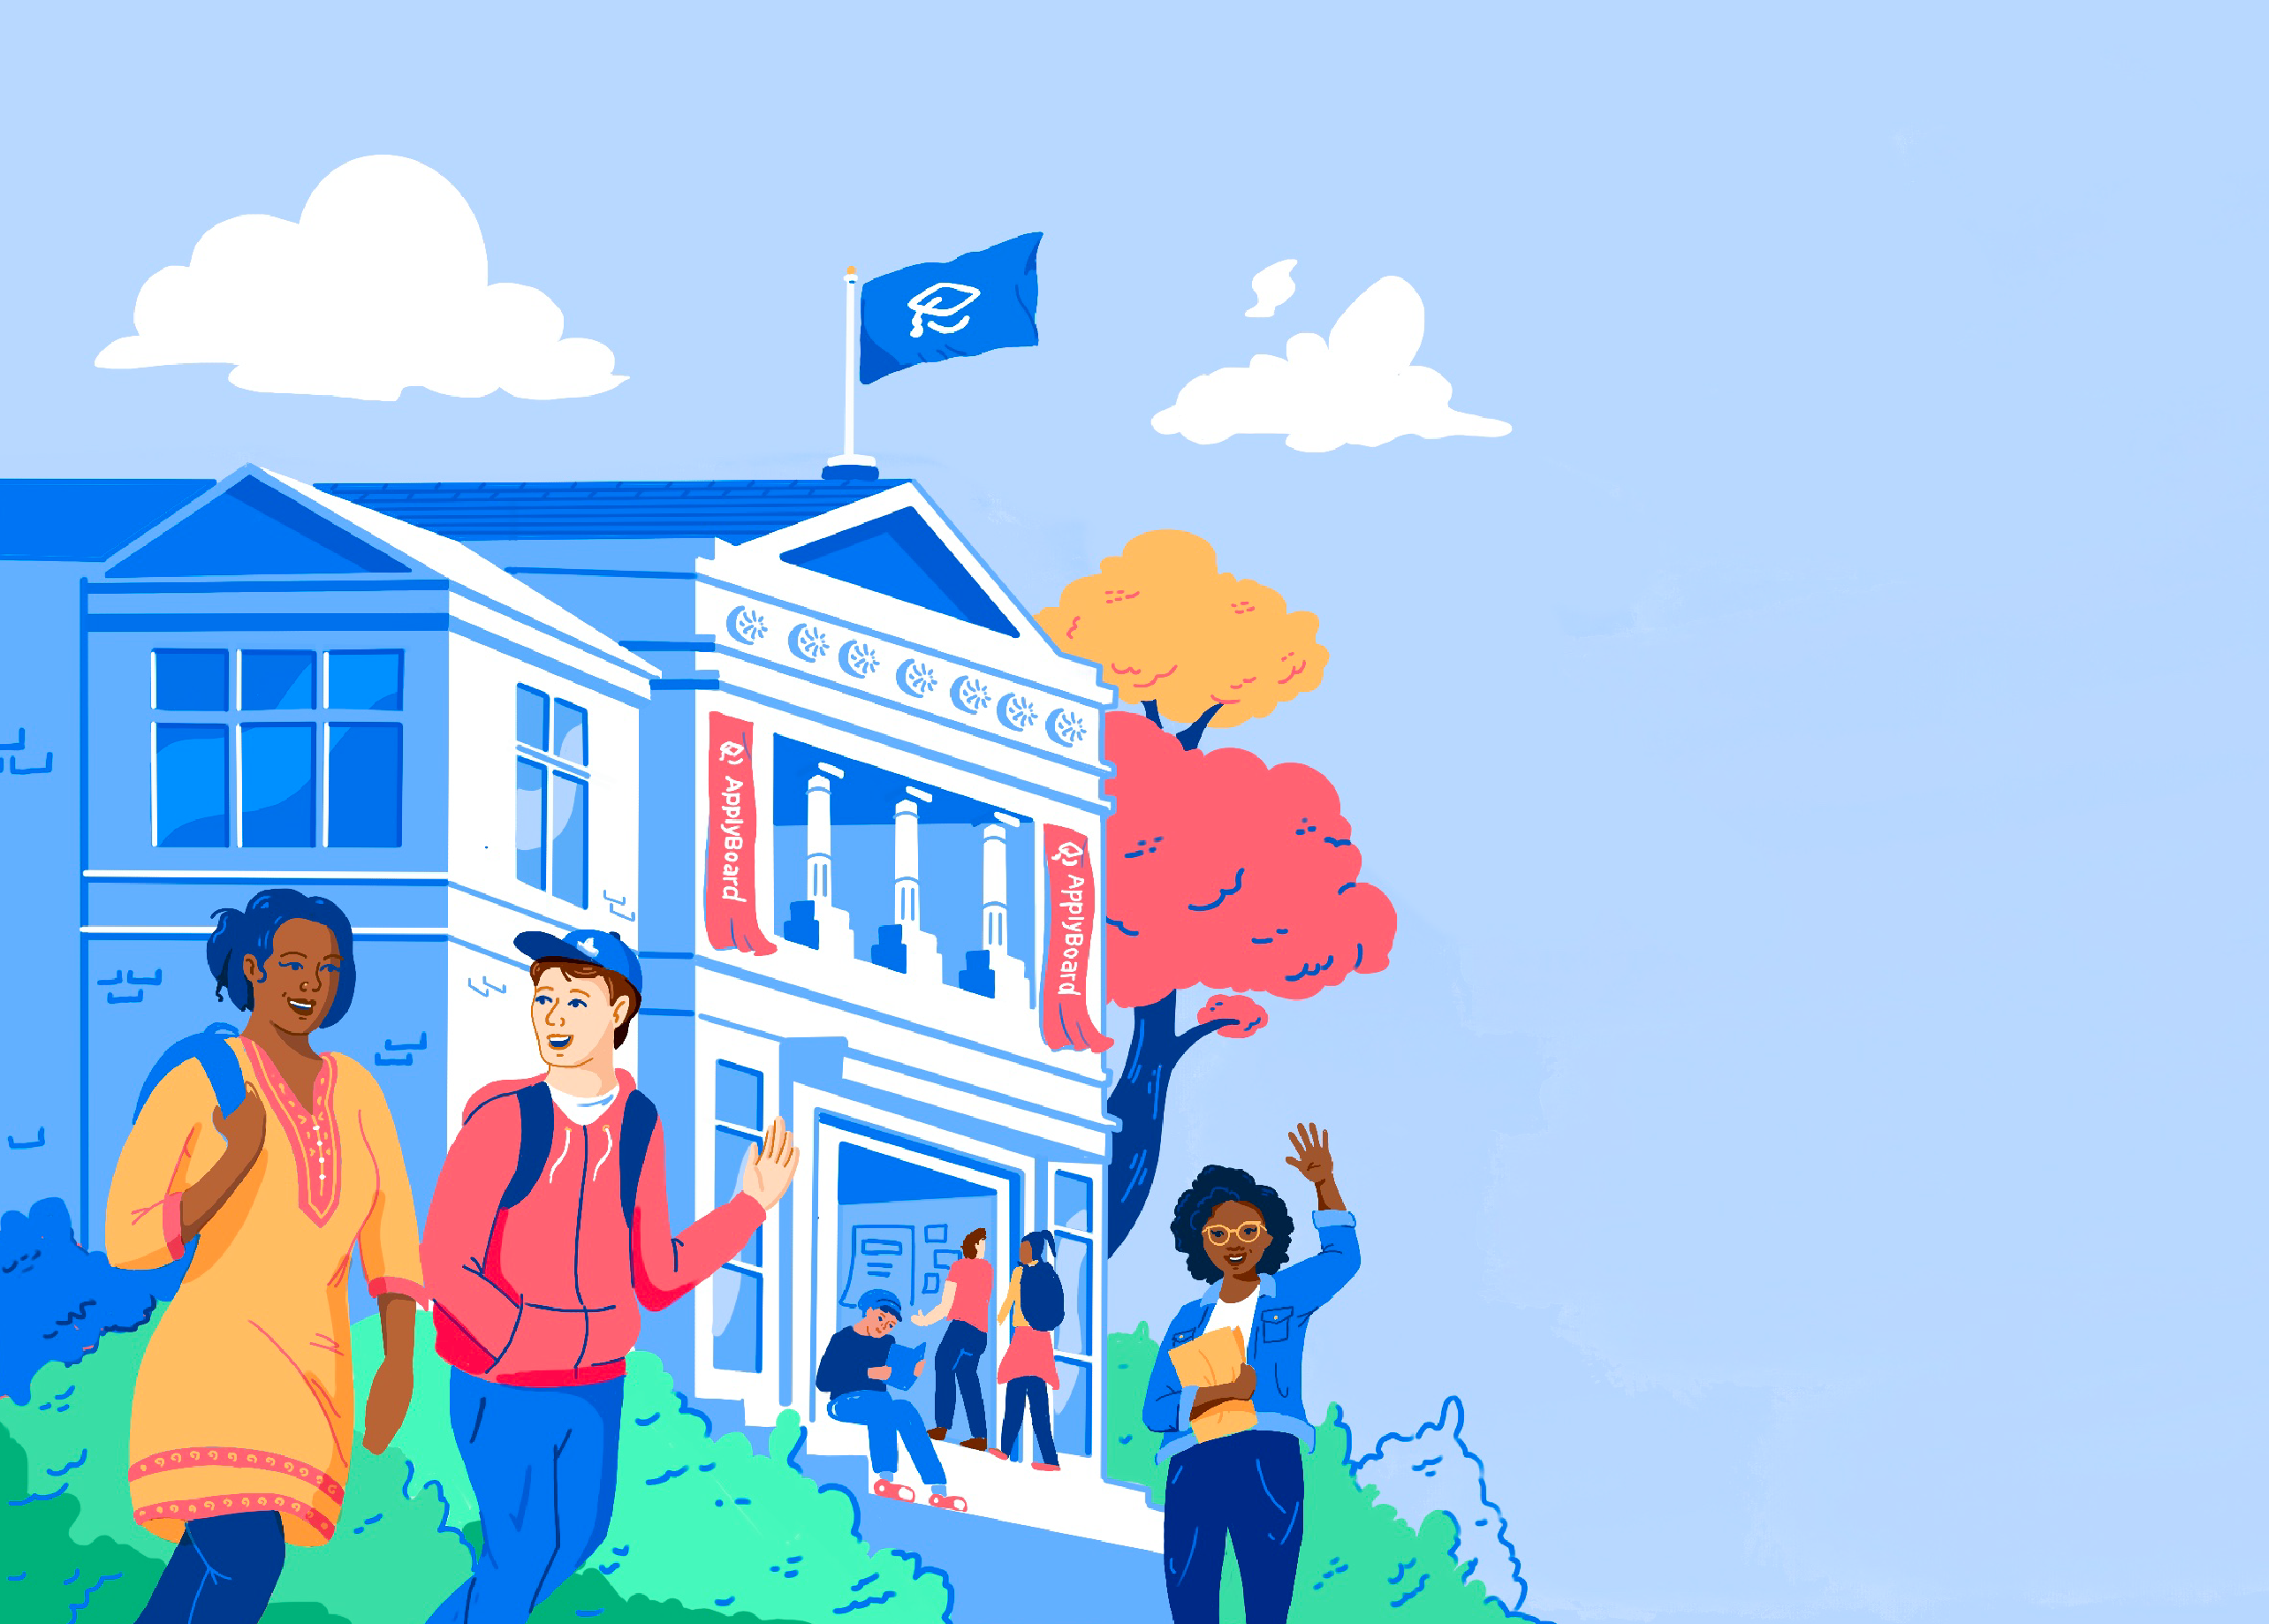 Illustration of students on campus